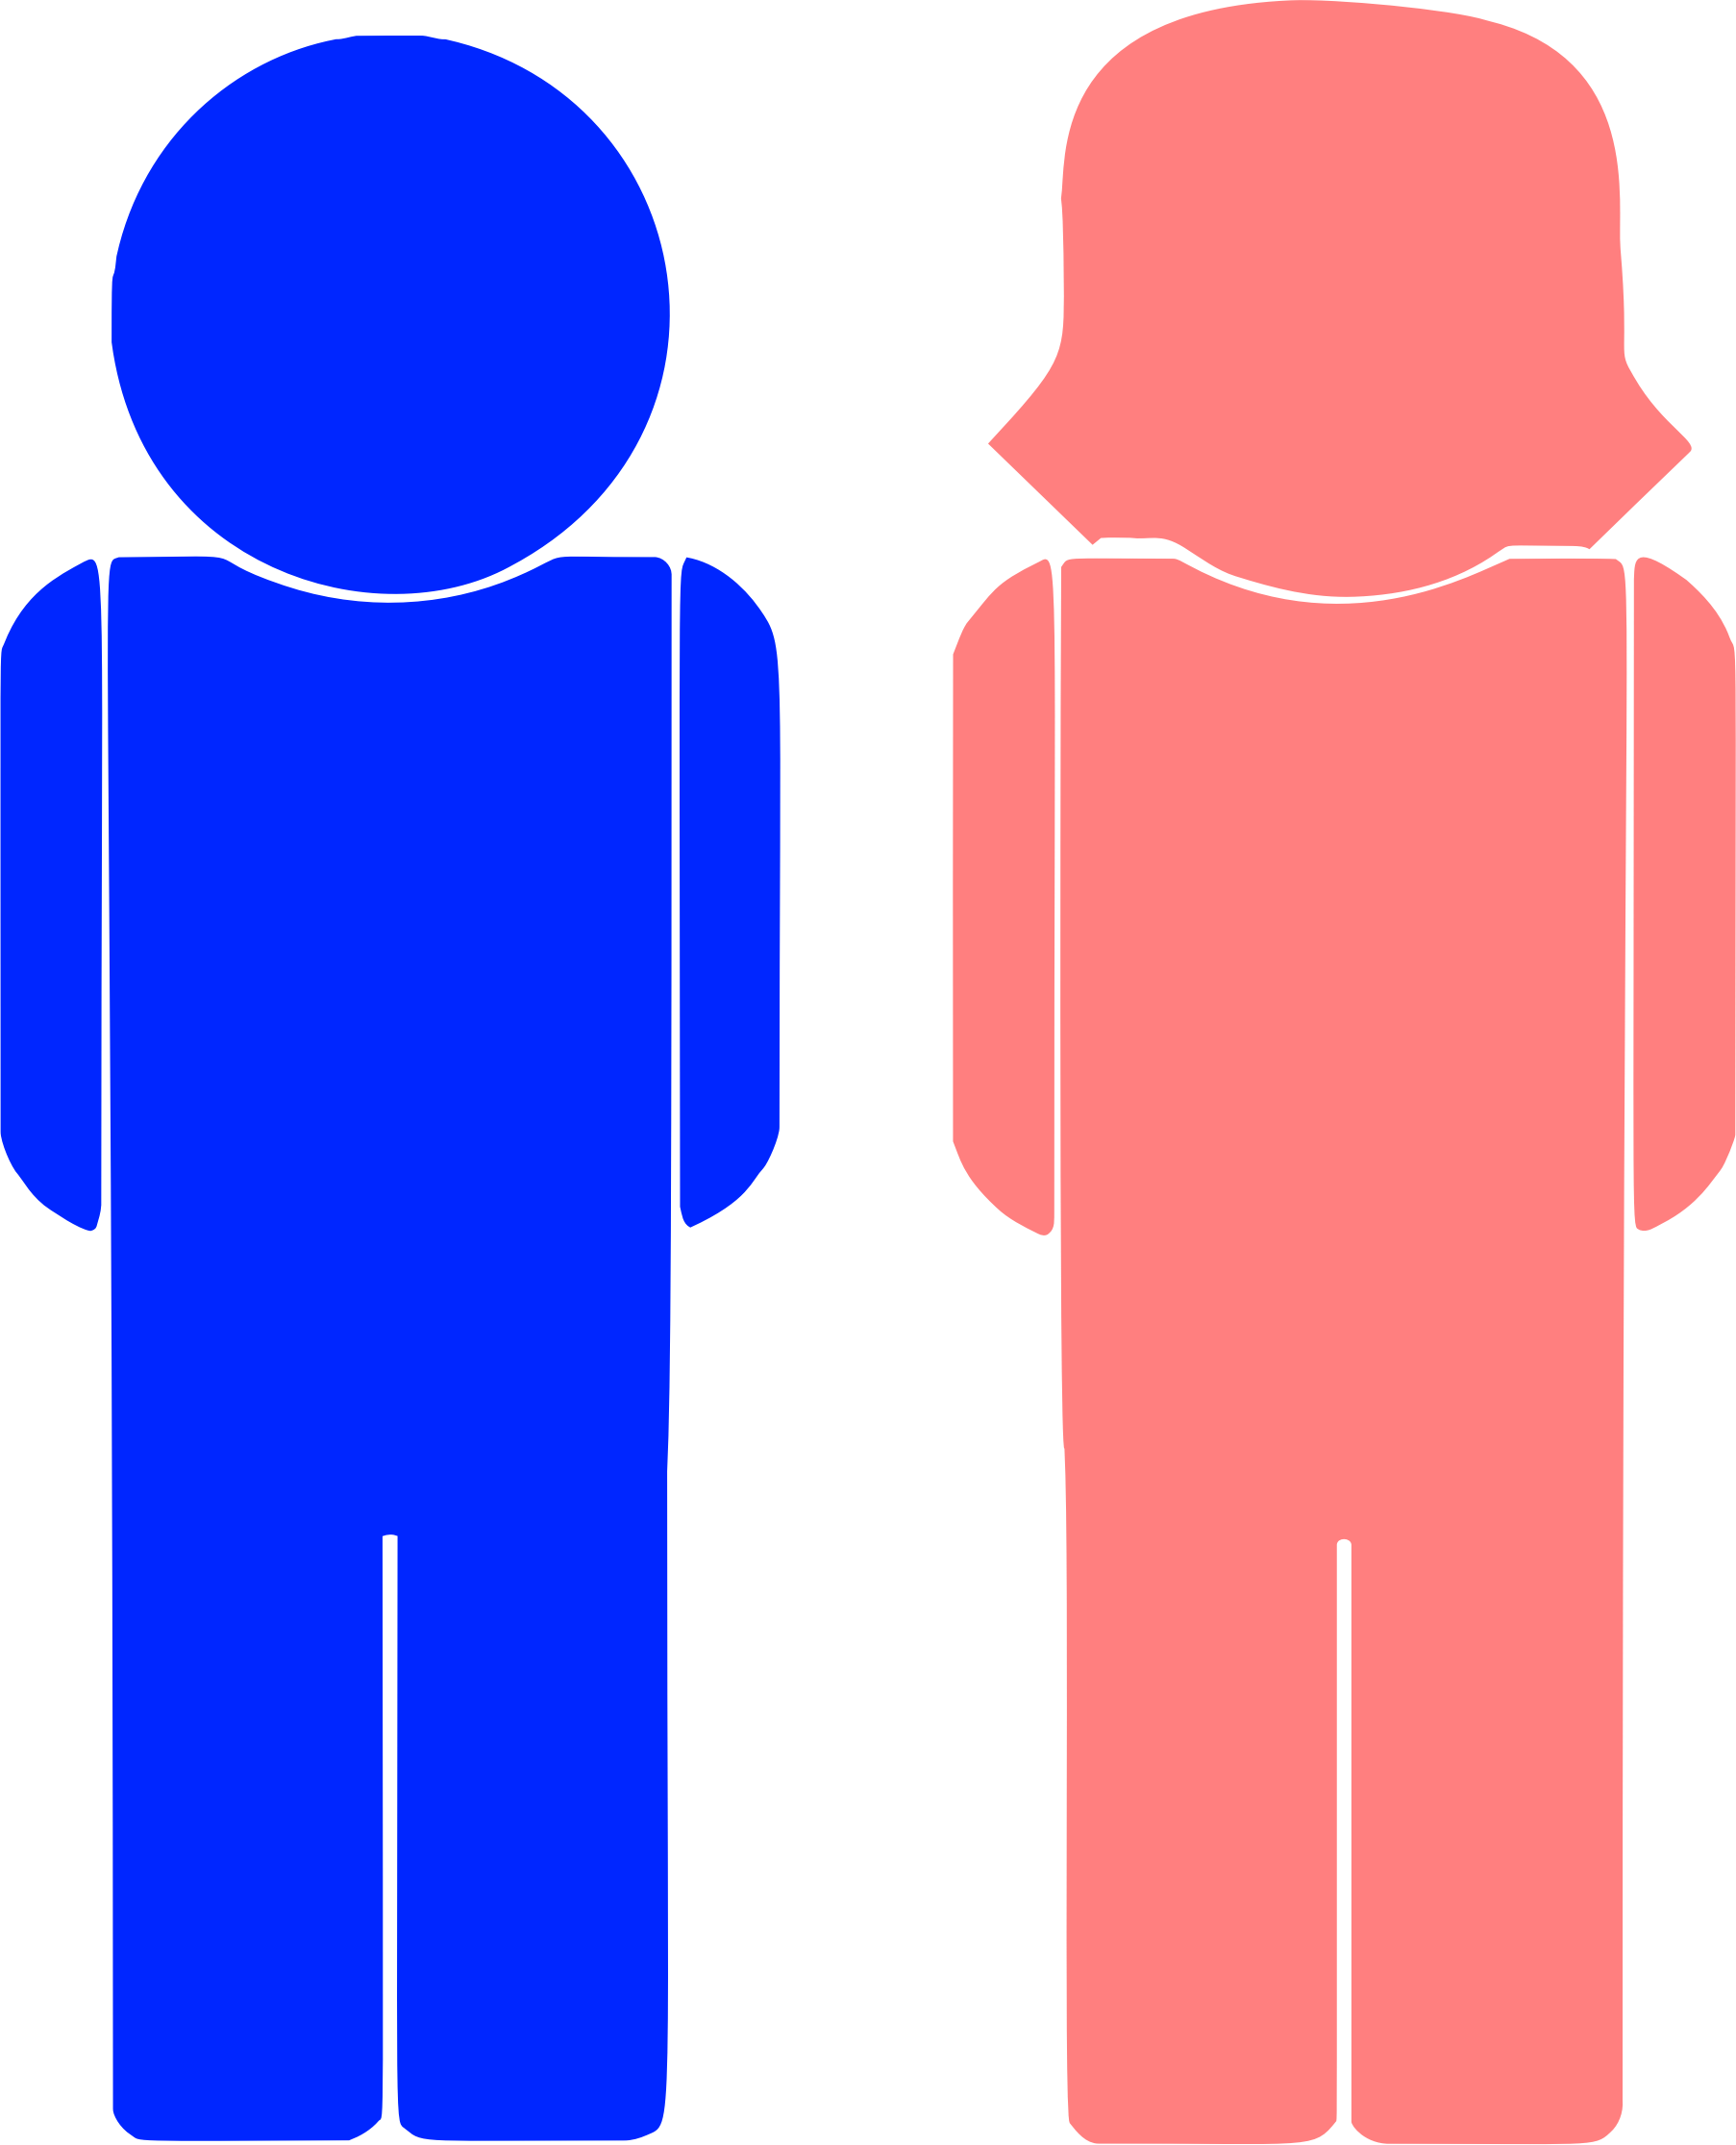 Male and female icons. Politics clipart political man